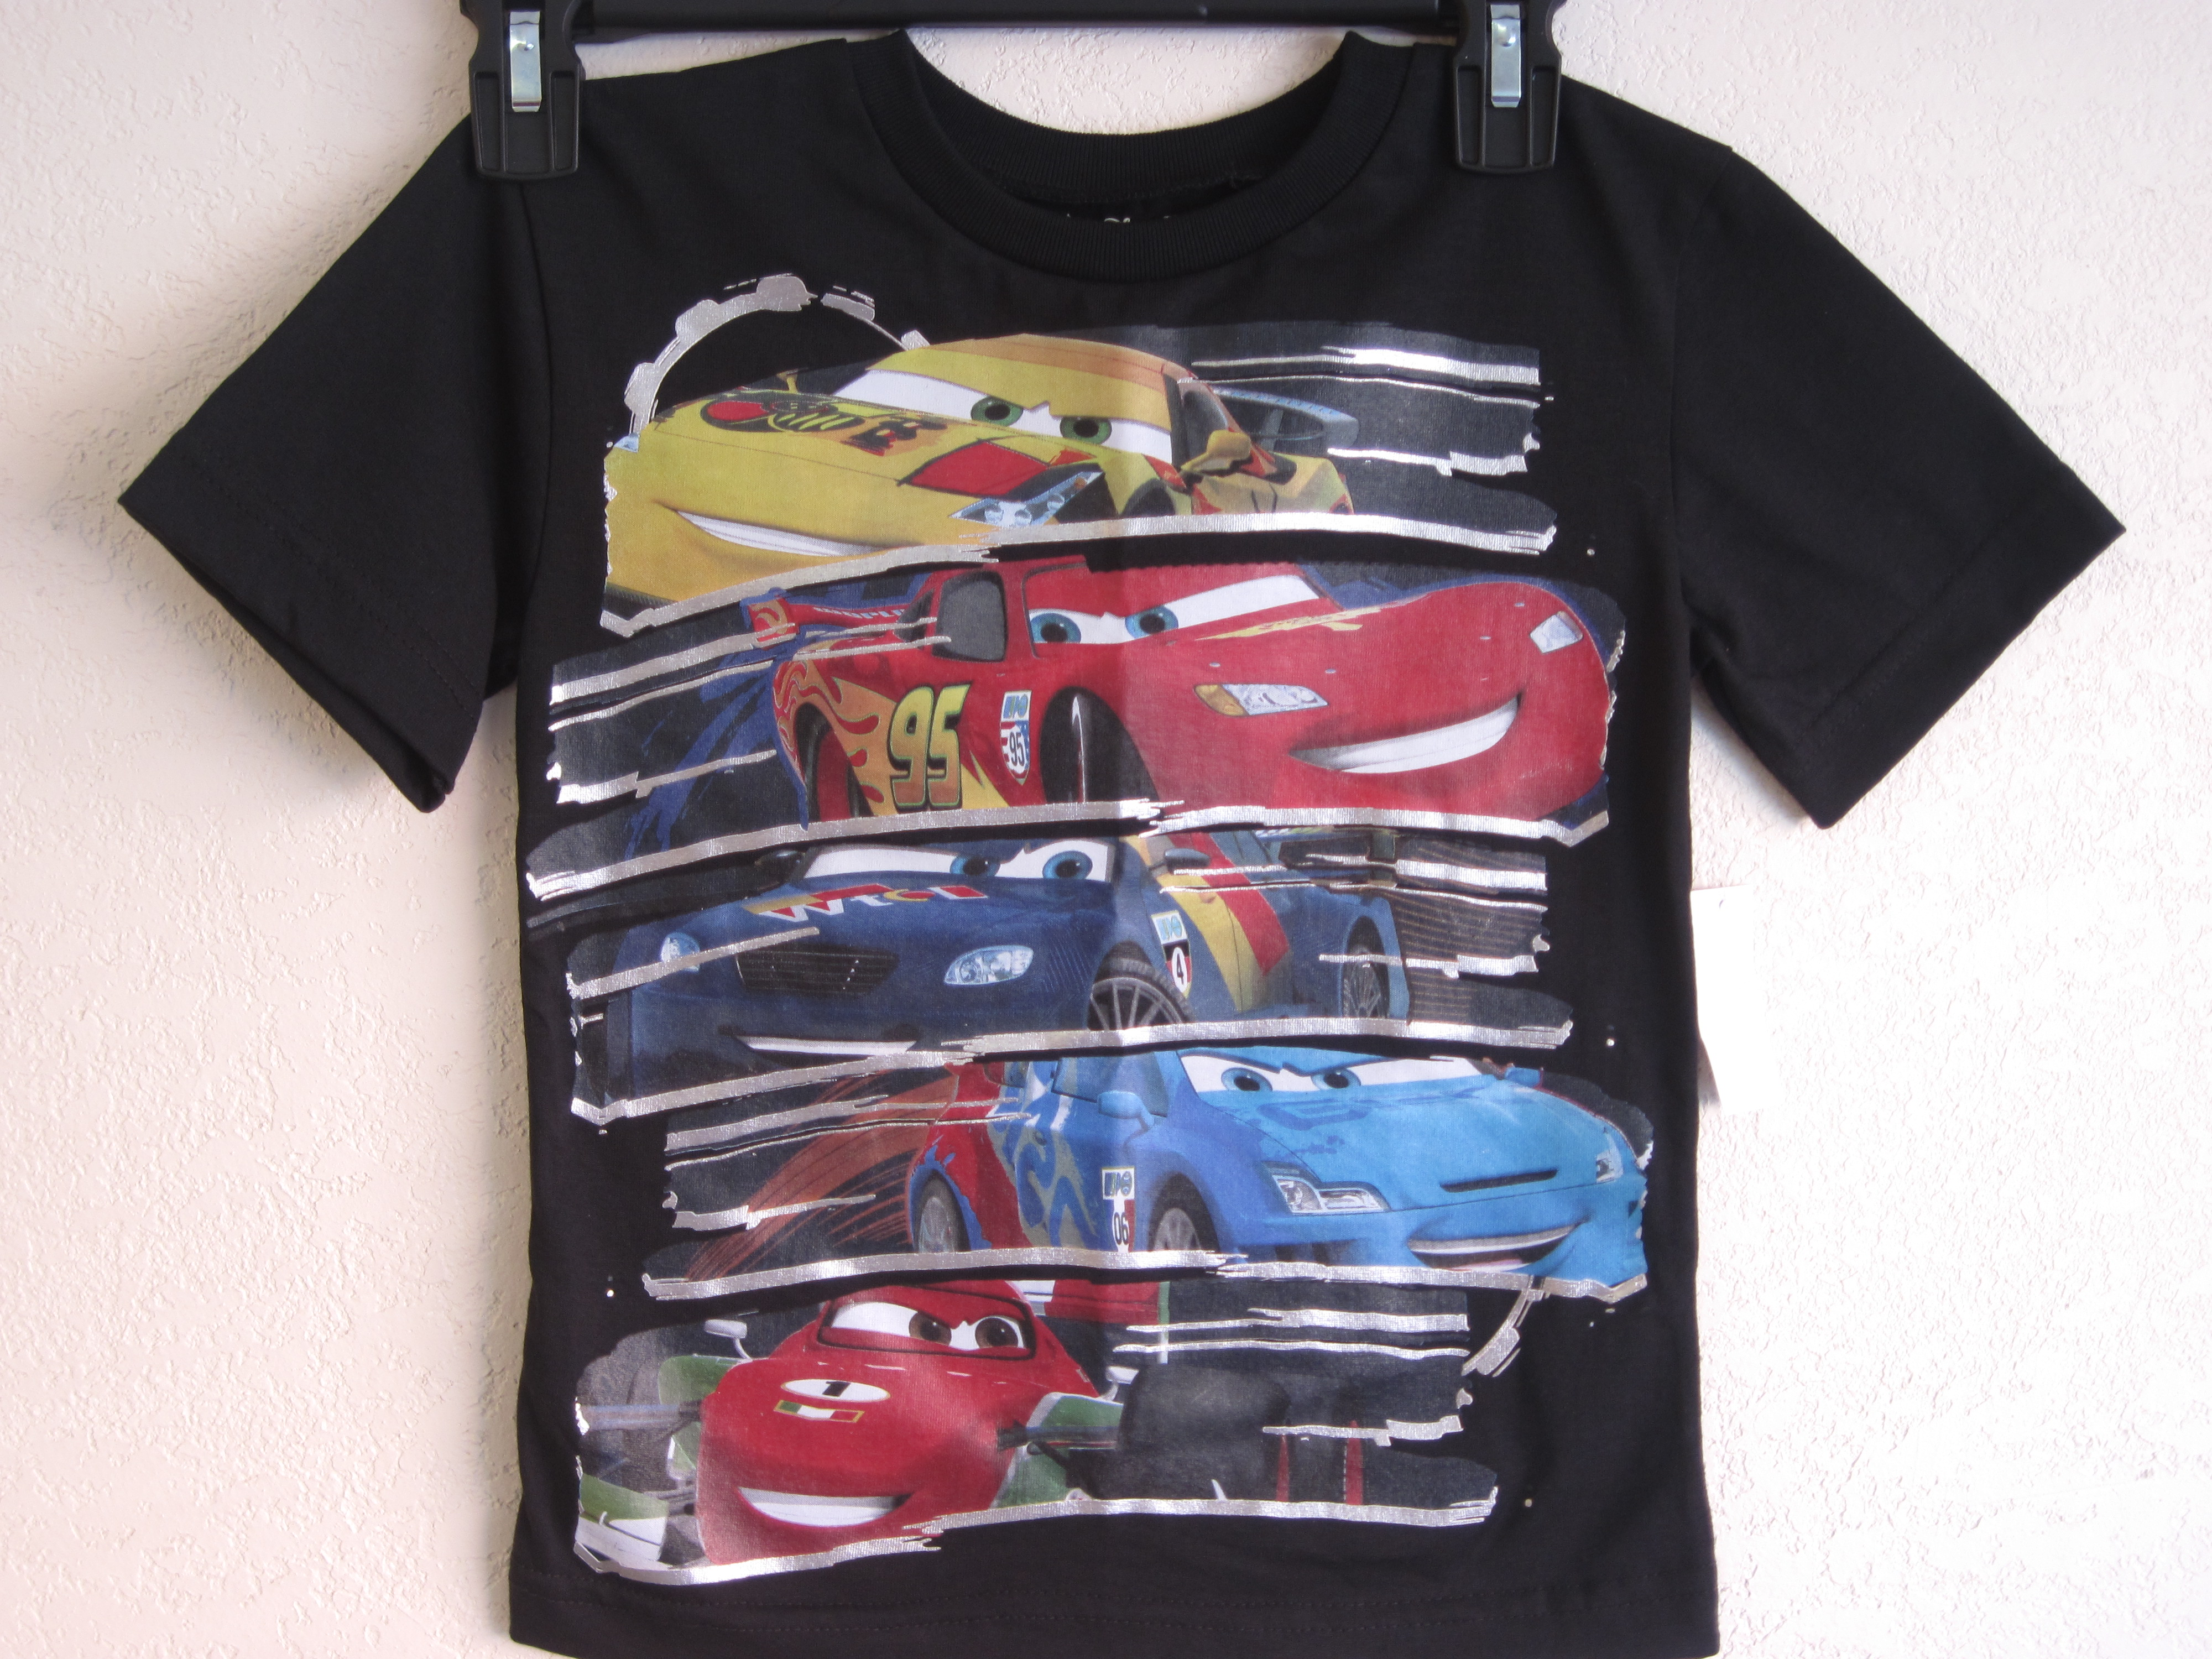 Disney*Pixar Cars 2 Sz M 5/6 T-Shirt (black)